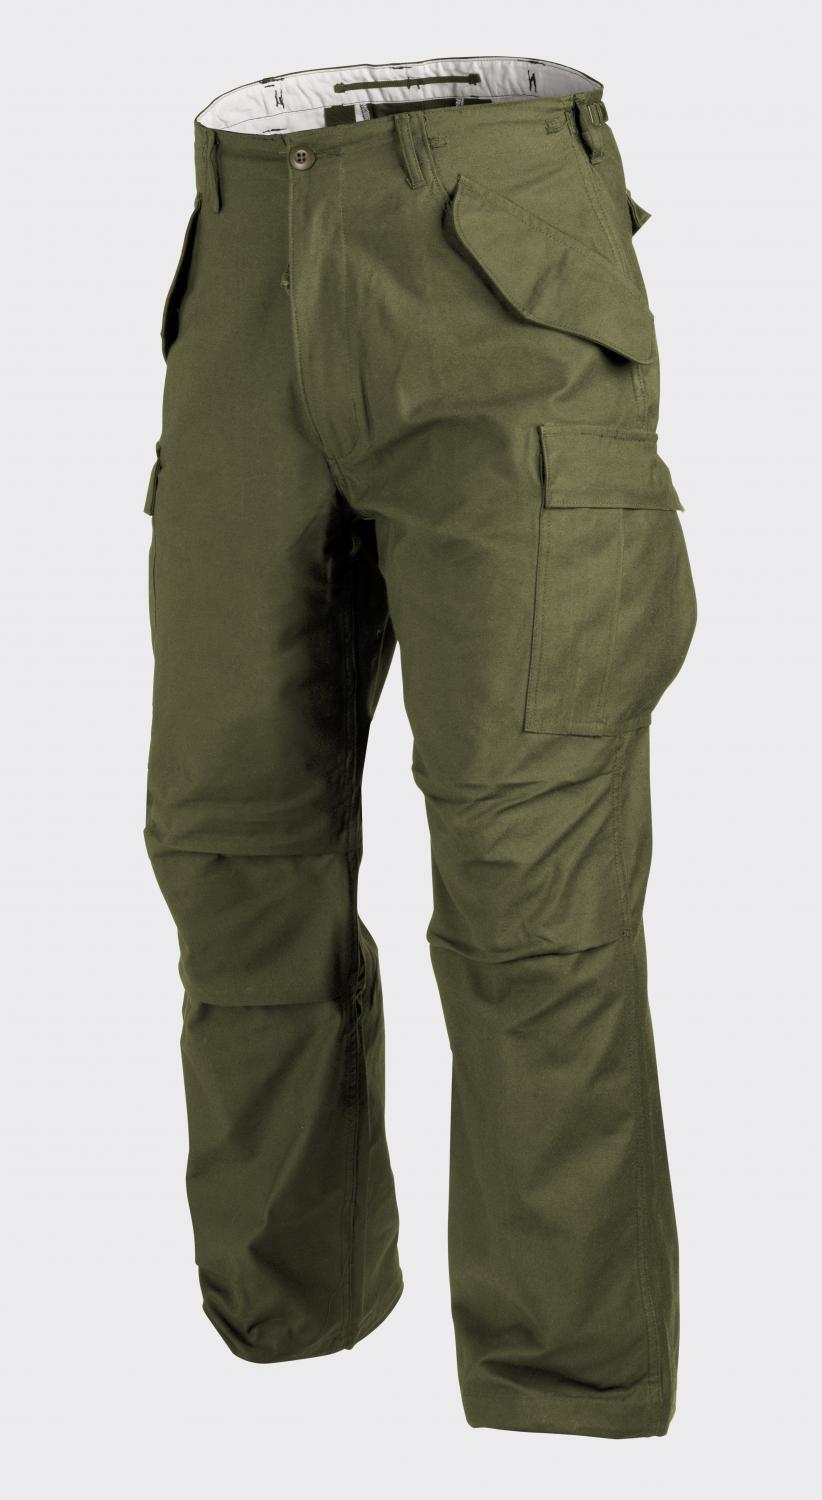 Helikon TEX US m65 Pantaloni Army Pantaloni campo REFORGER Field Pants OD verde SMALL LONG